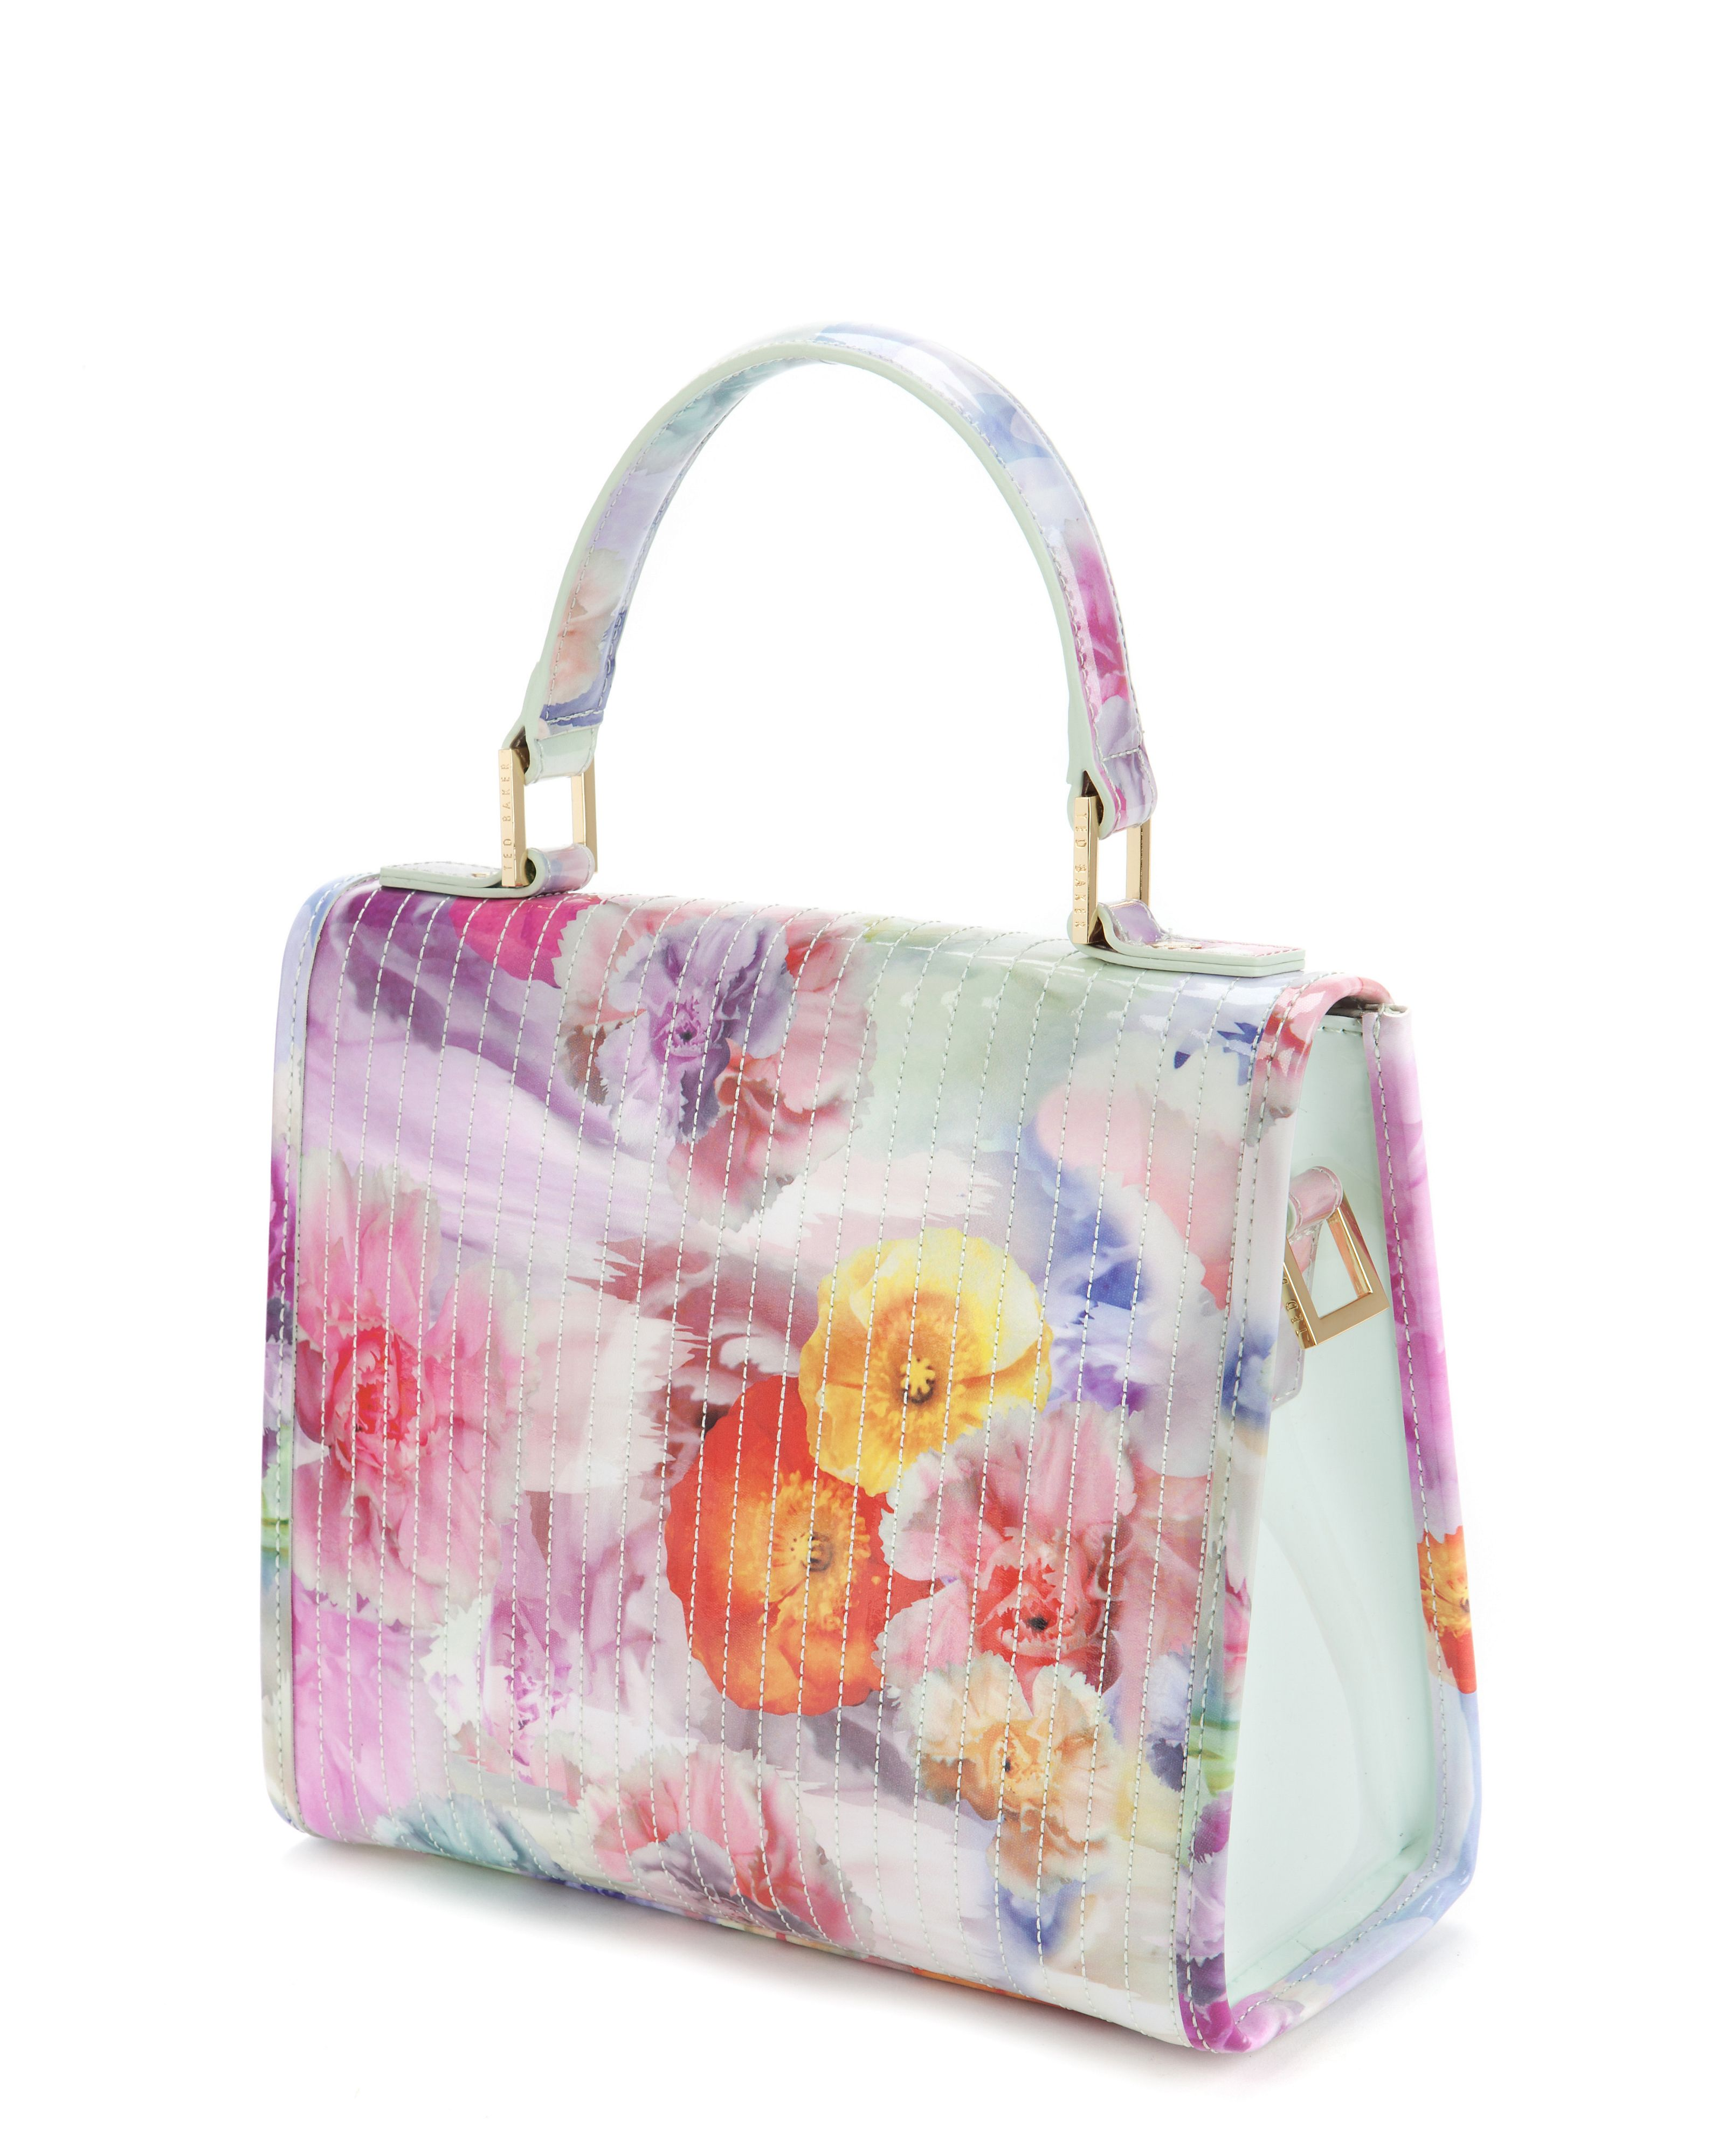 Davena floral printed cross body bag